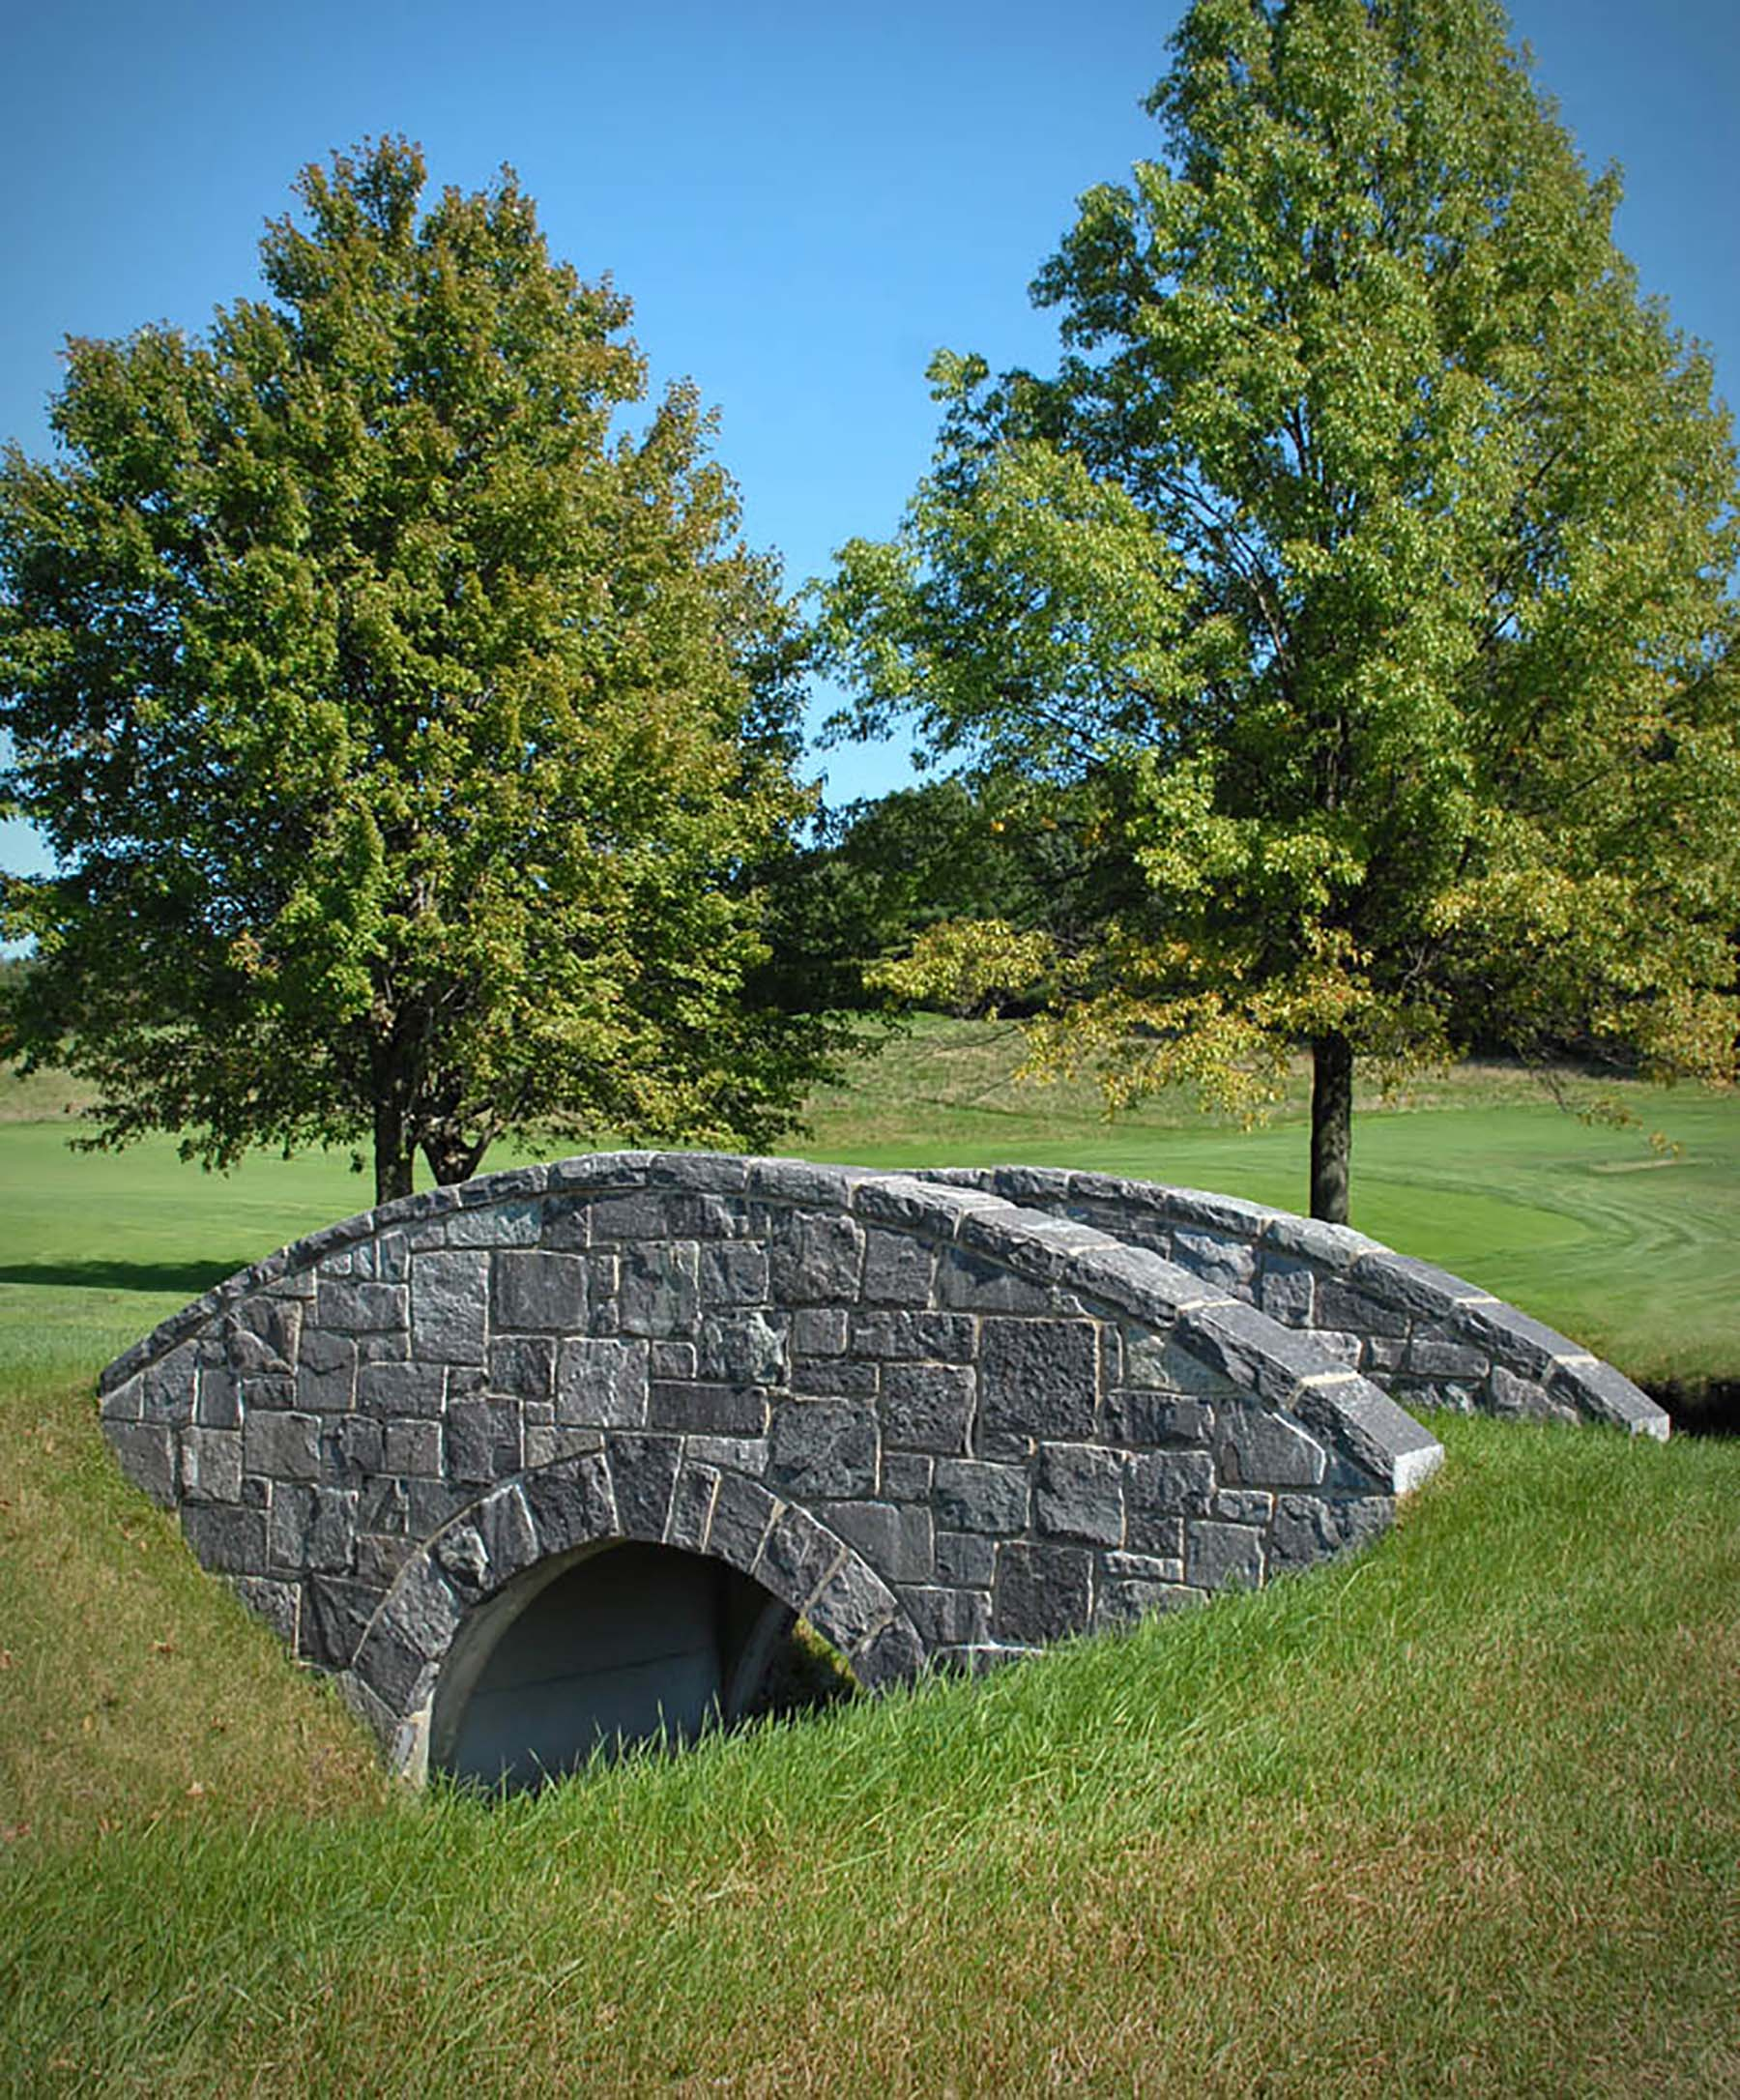 corinthian granite natural stone bridge in park